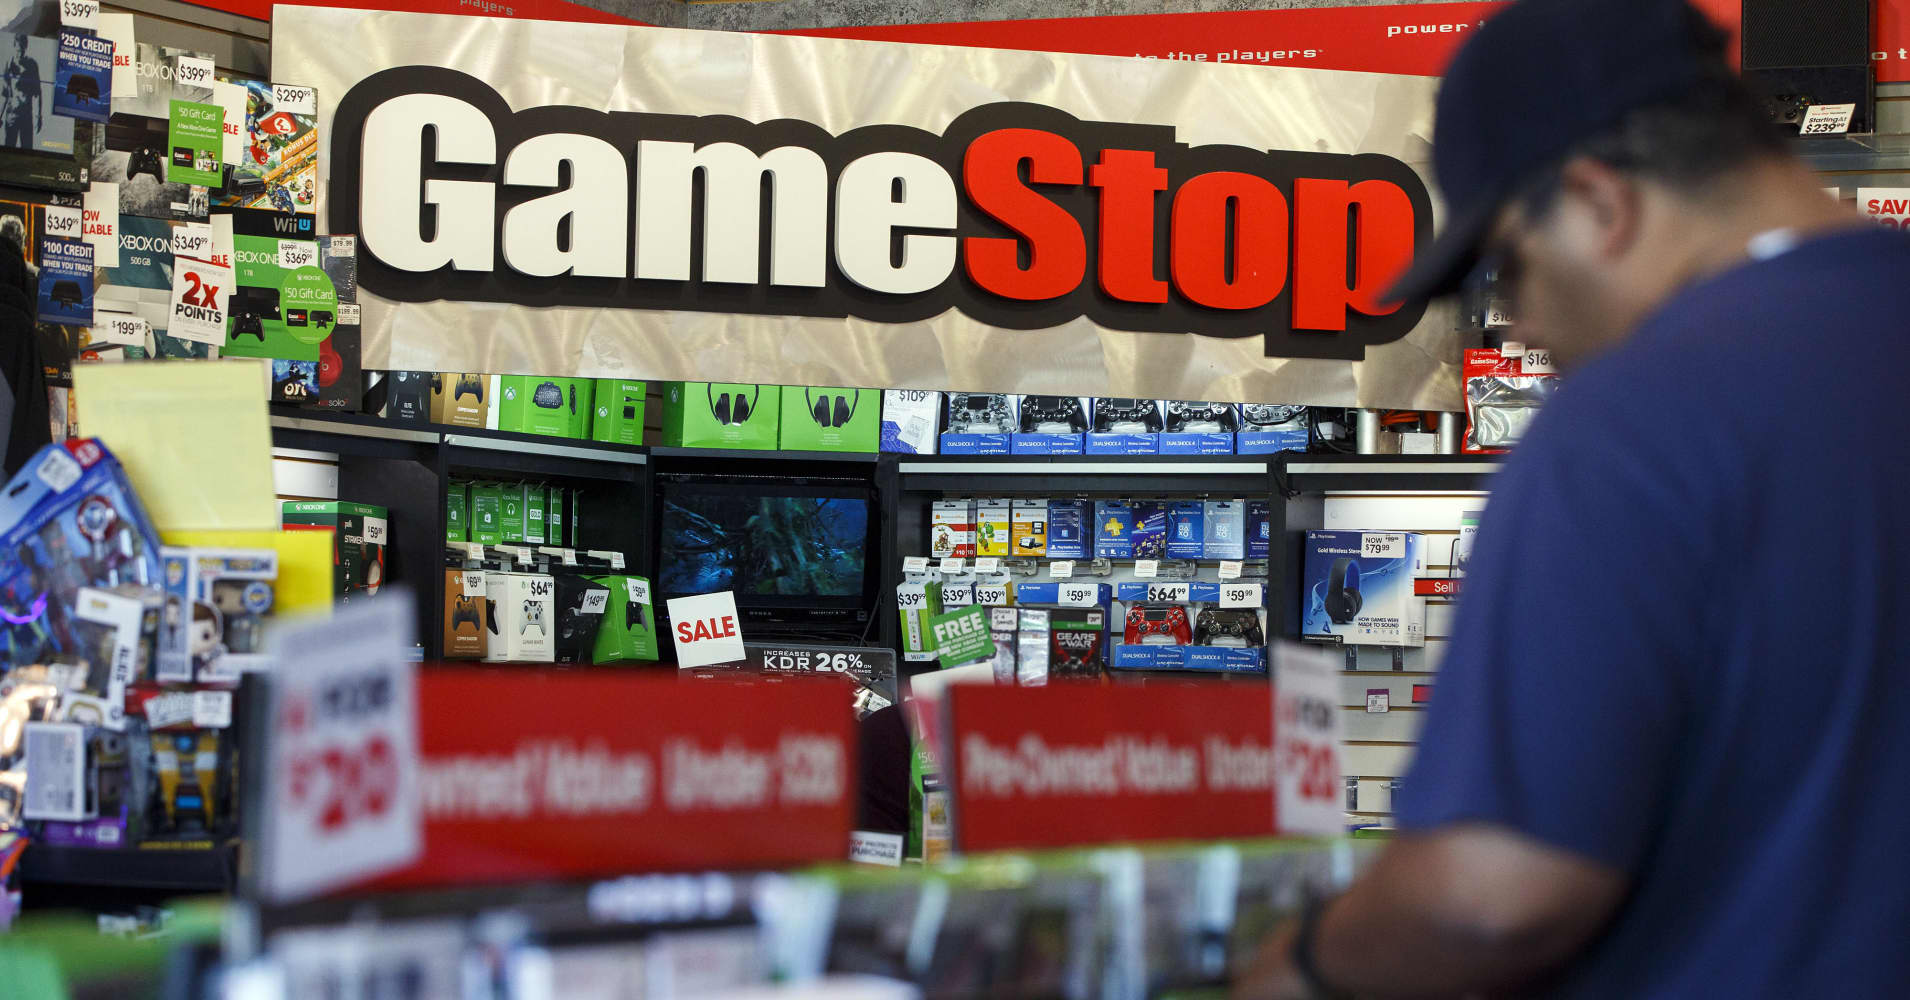 Gamestop TV ads in storesGamestop